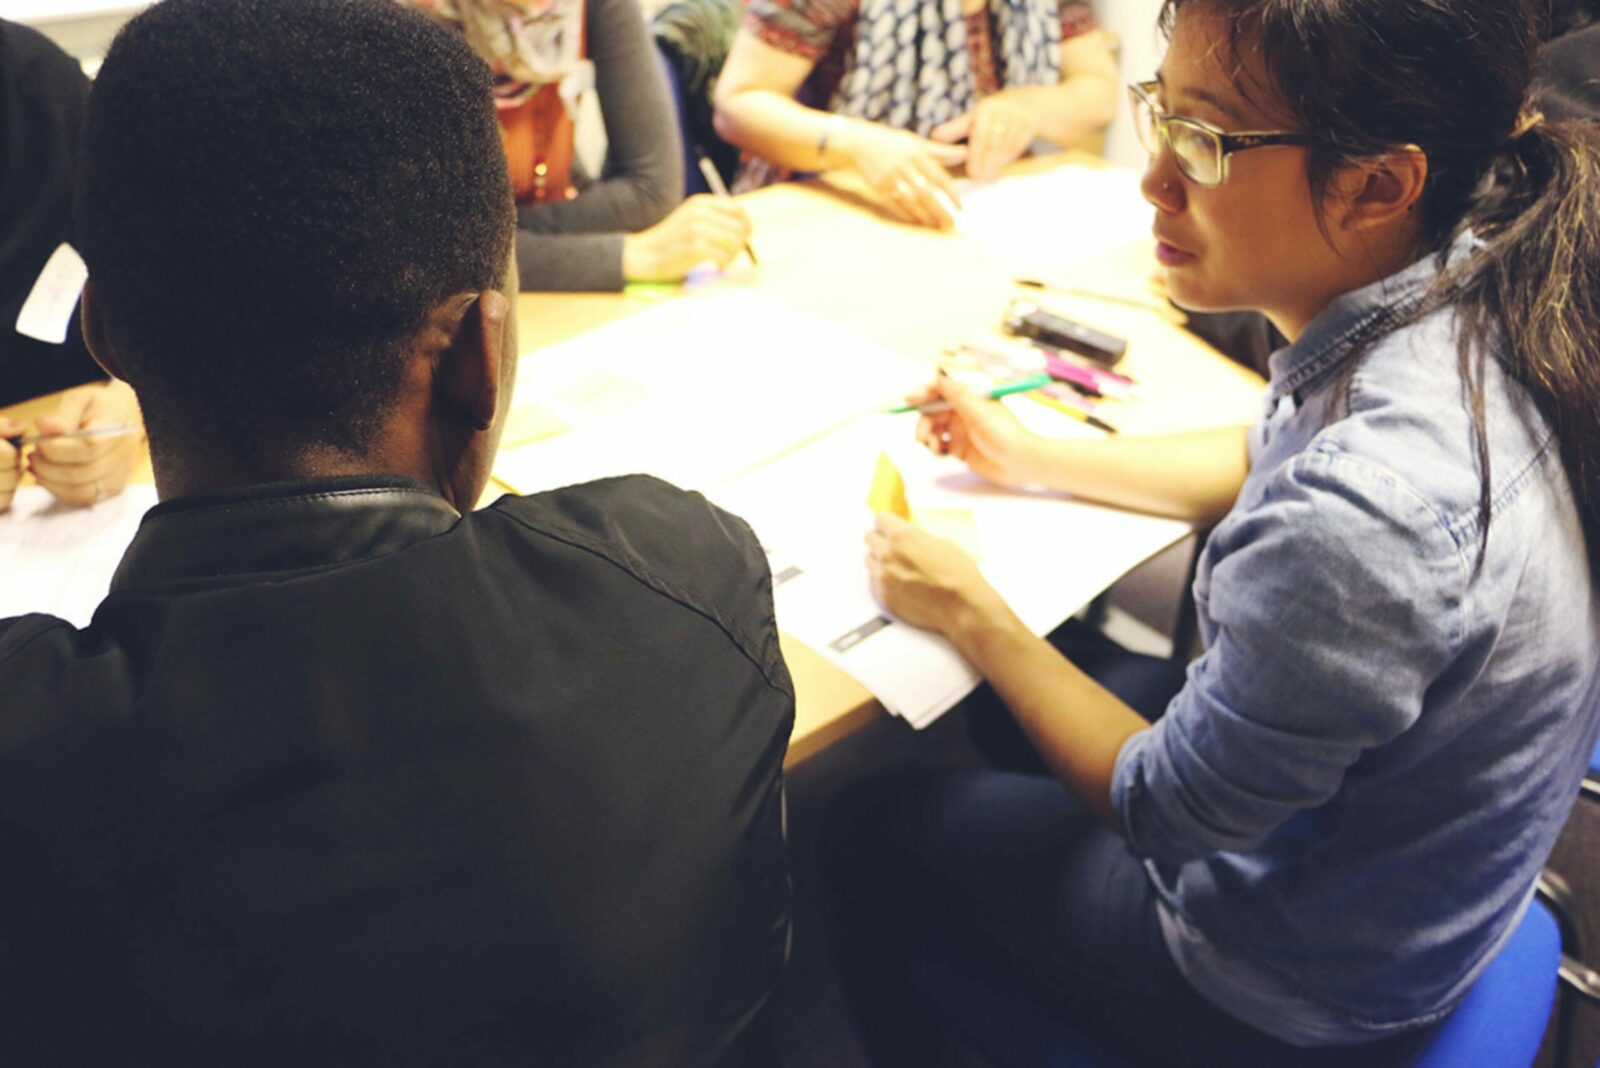 Marie at work with Snook, a UK service design agency.